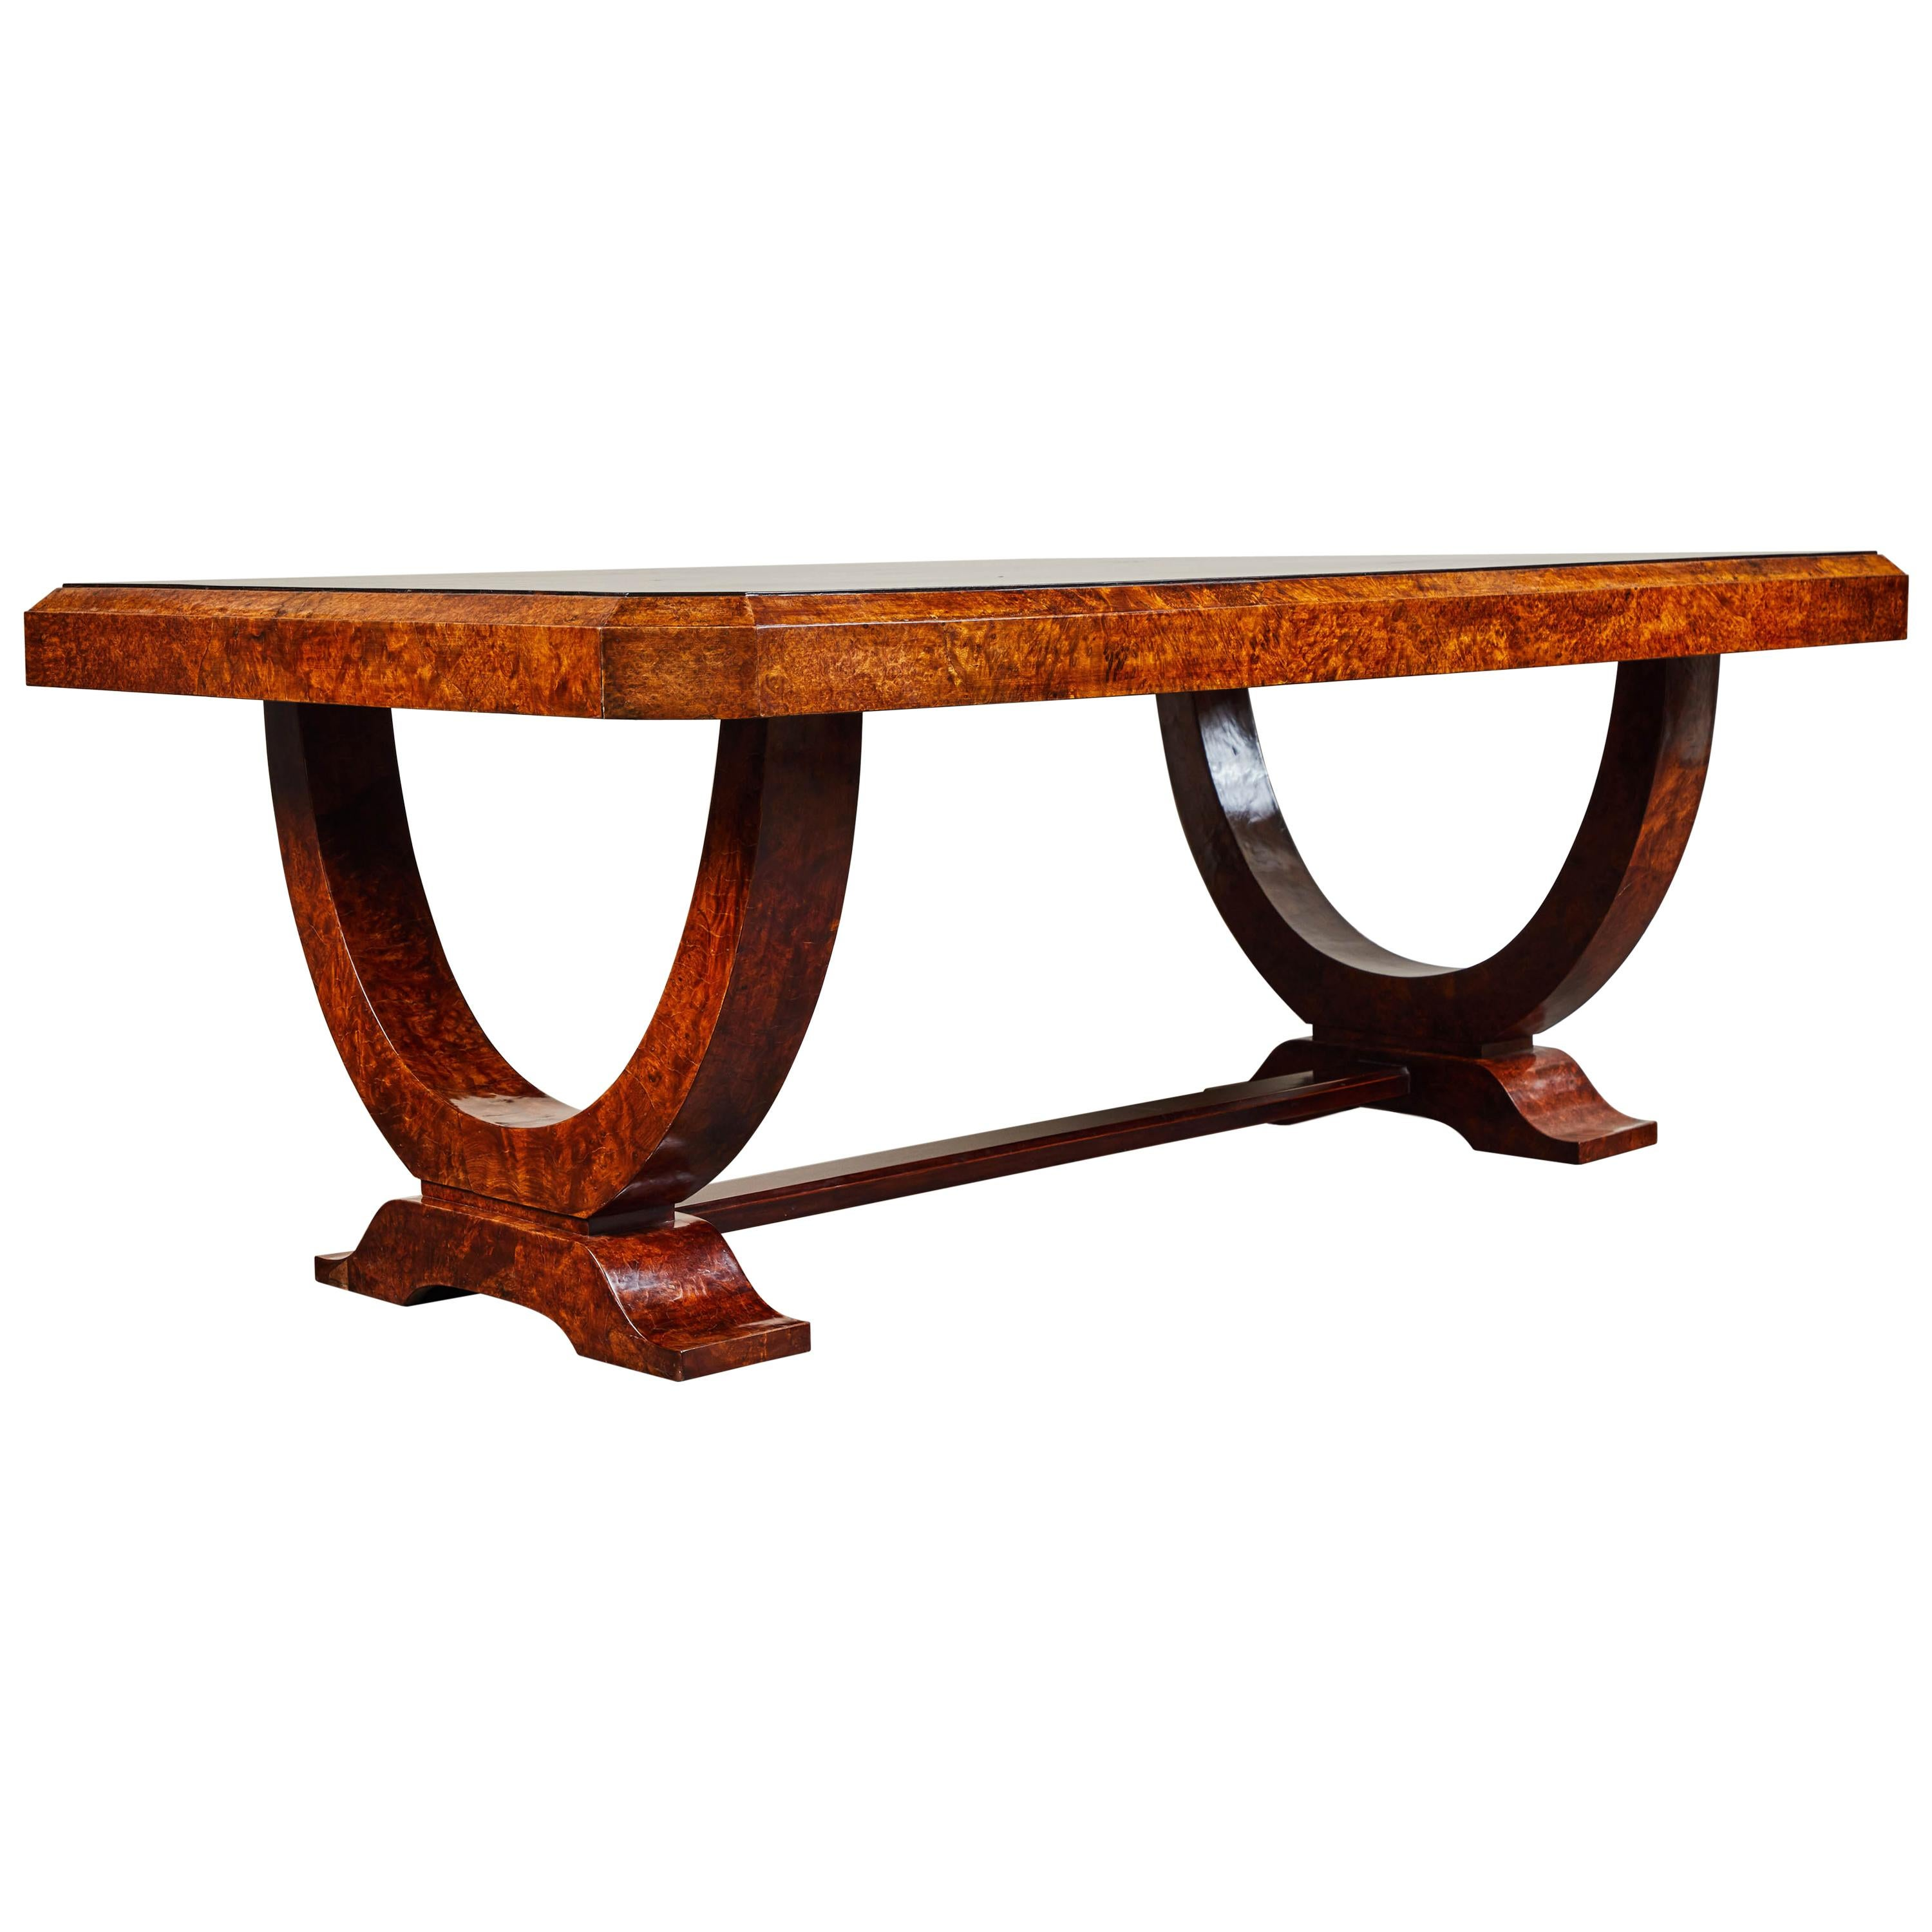 Early 20th Century French Colonial Art Deco Dining Table